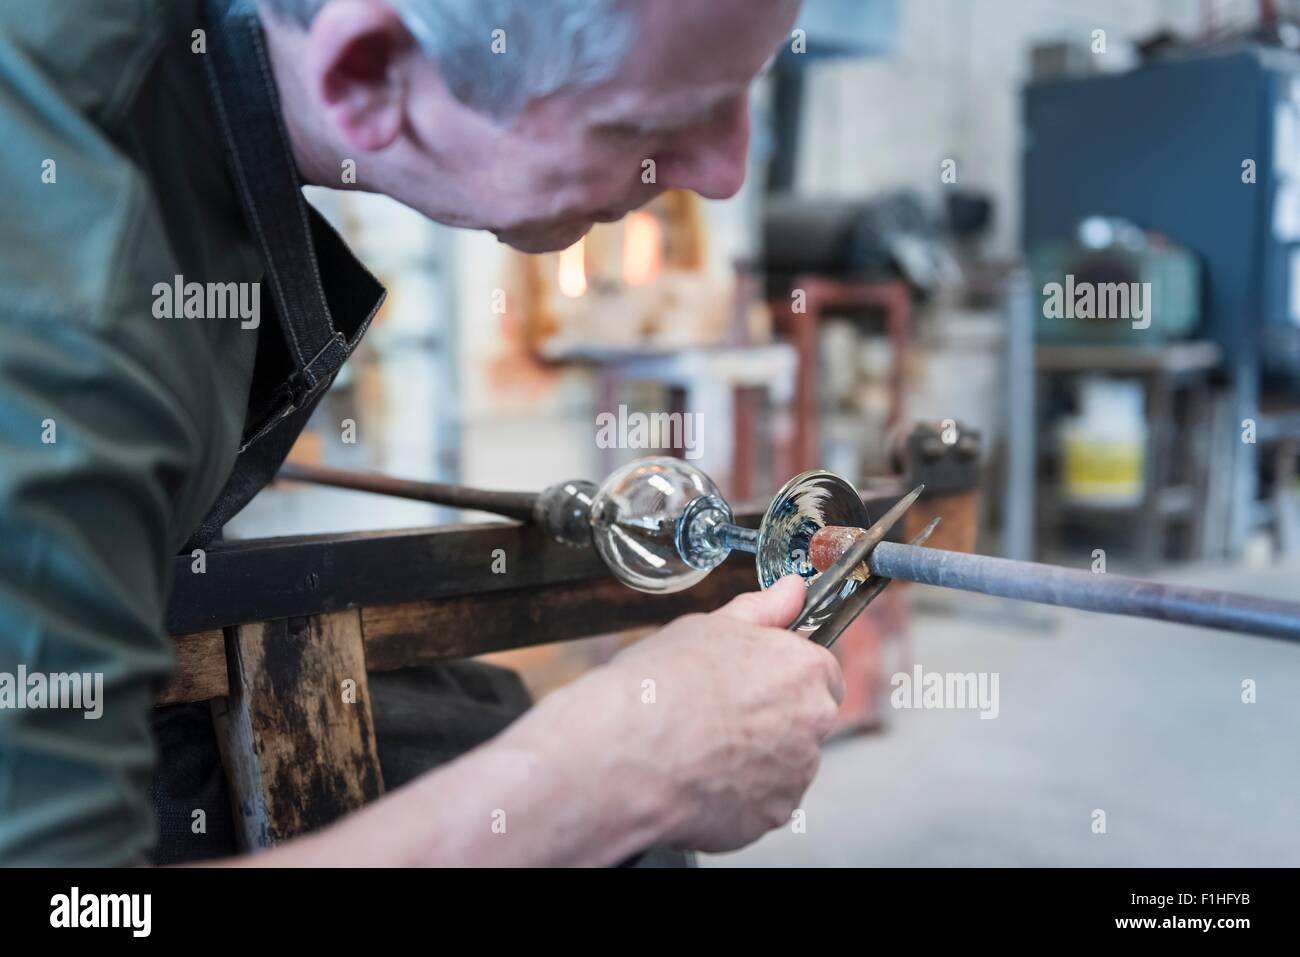 Glassblower forming hot glass object - Stock Image